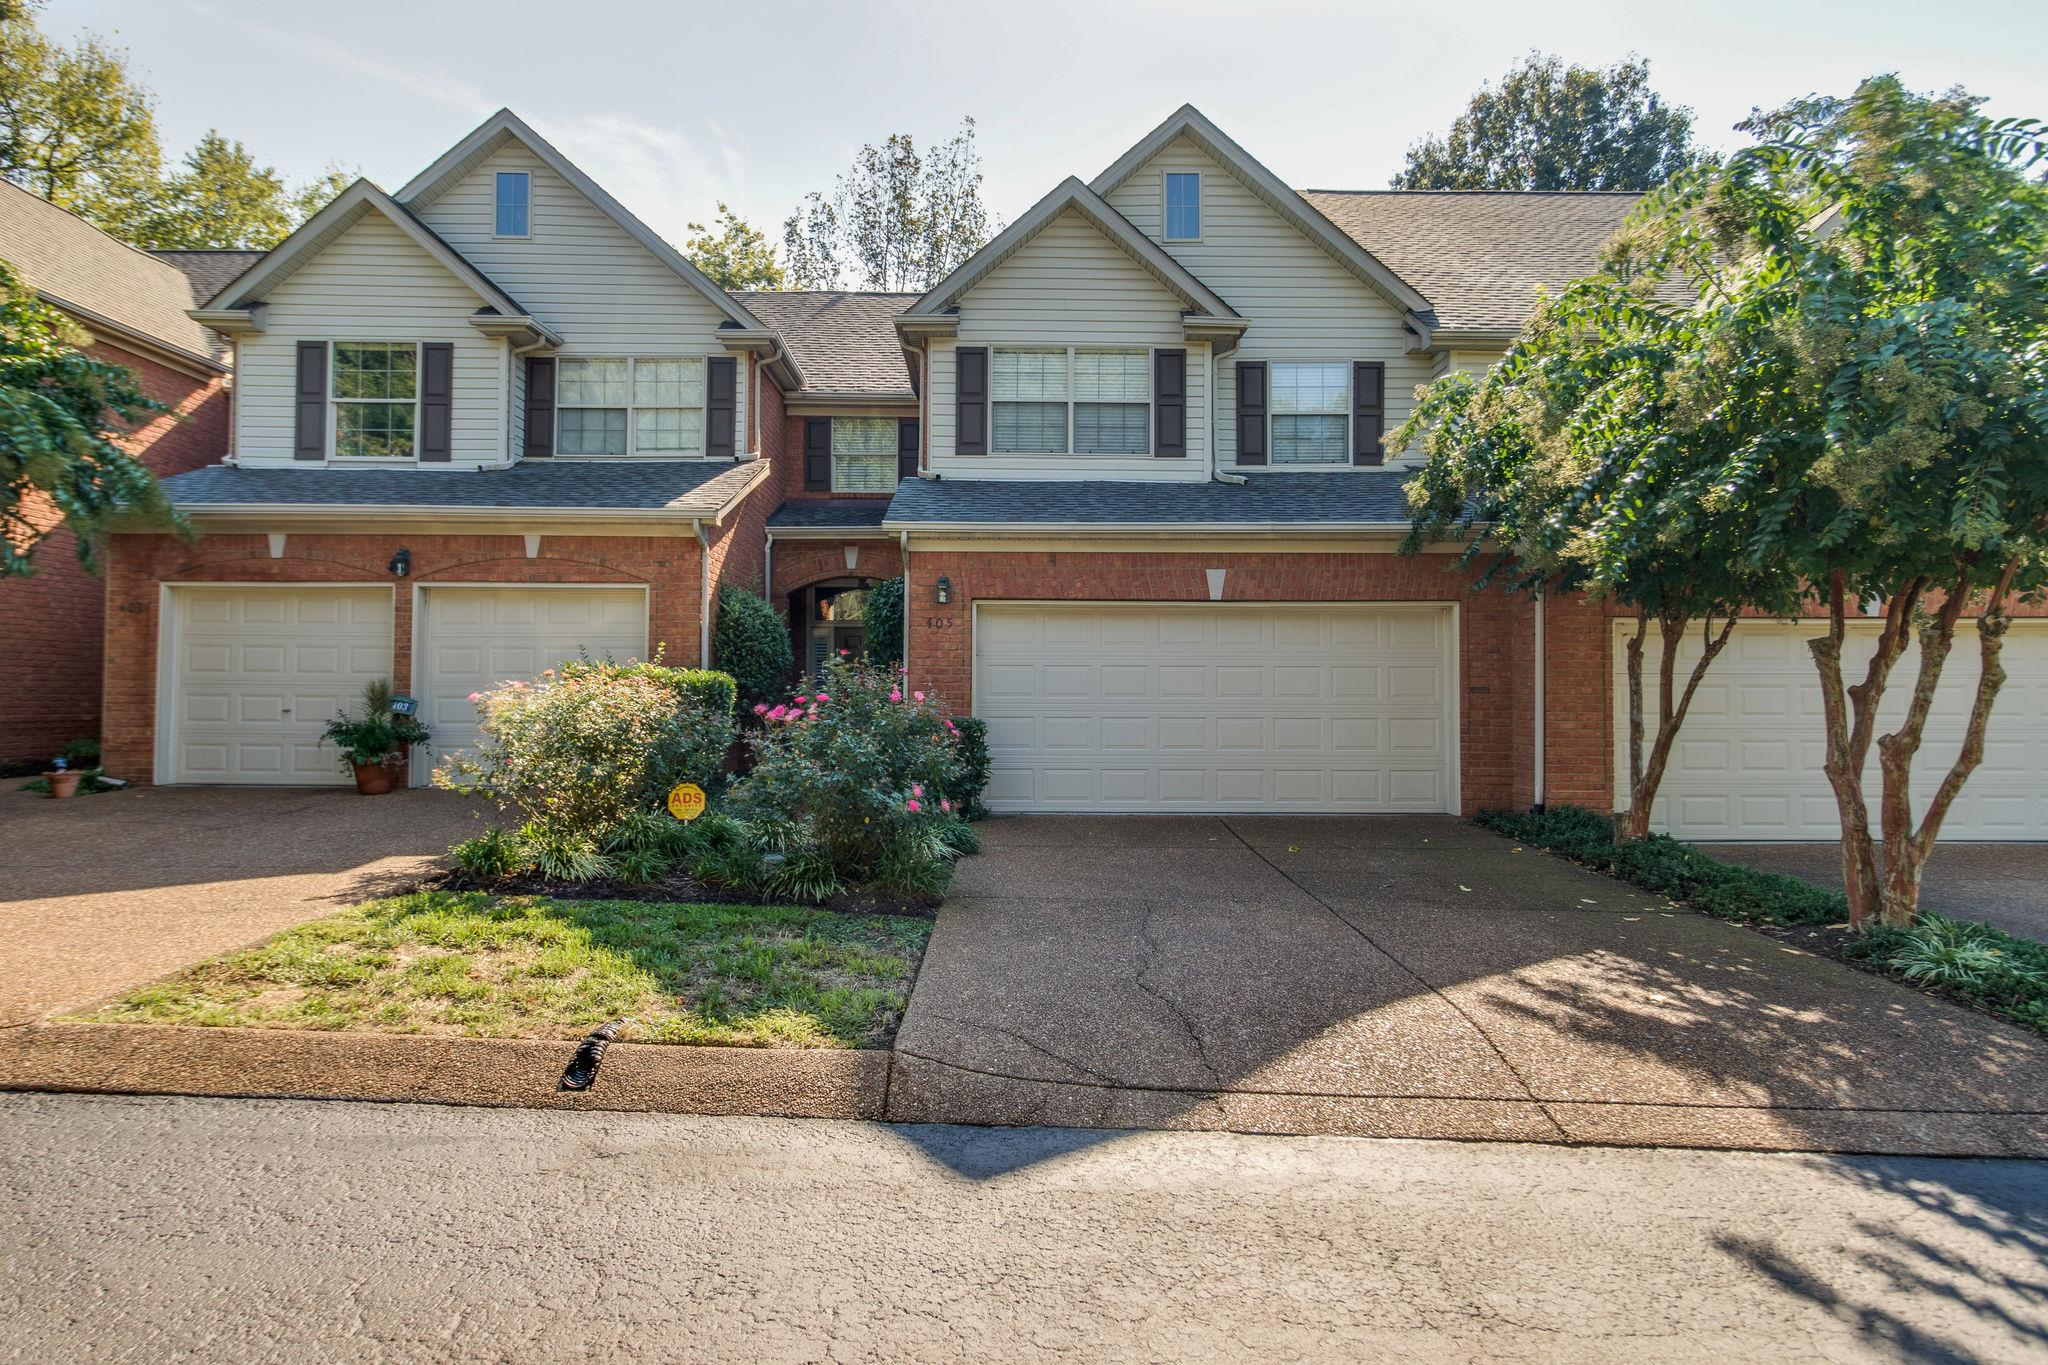 641 Old Hickory Blvd Unit 405 405, Brentwood, TN 37027